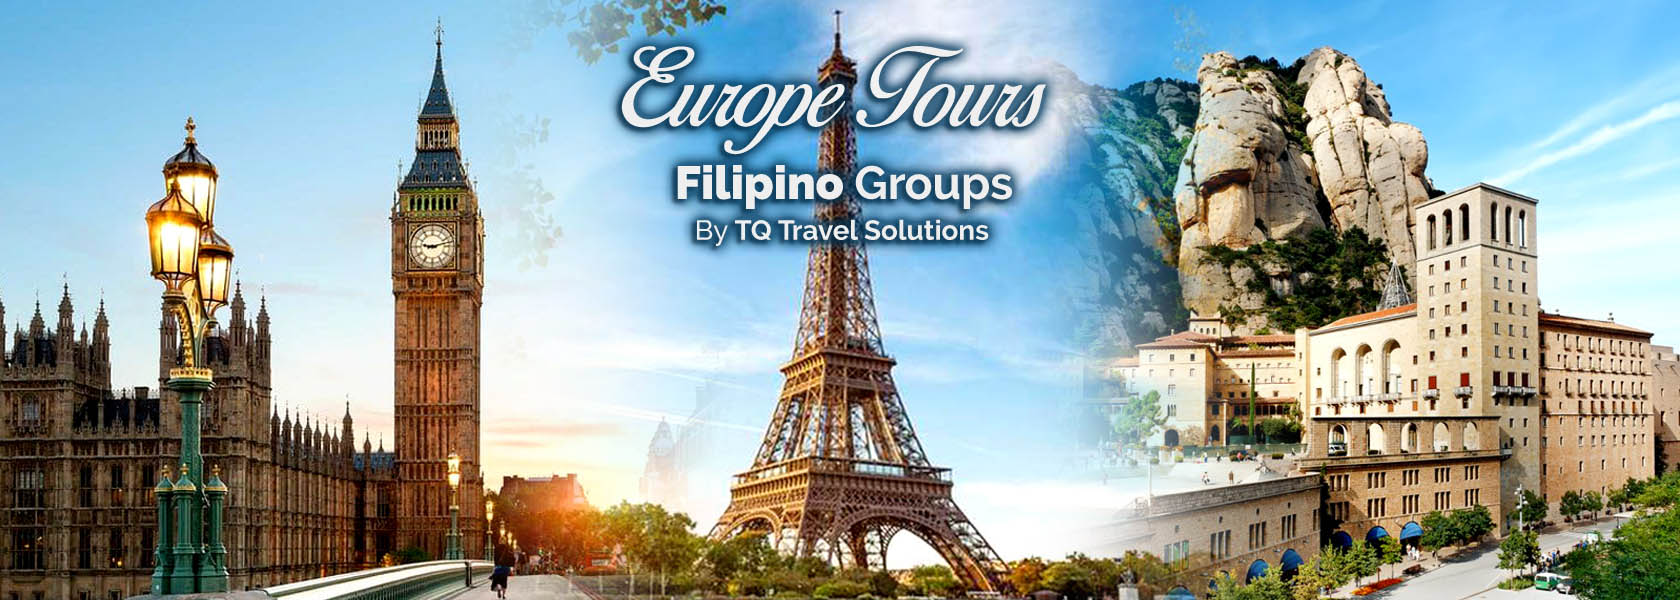 Europe Tour Packages Usa